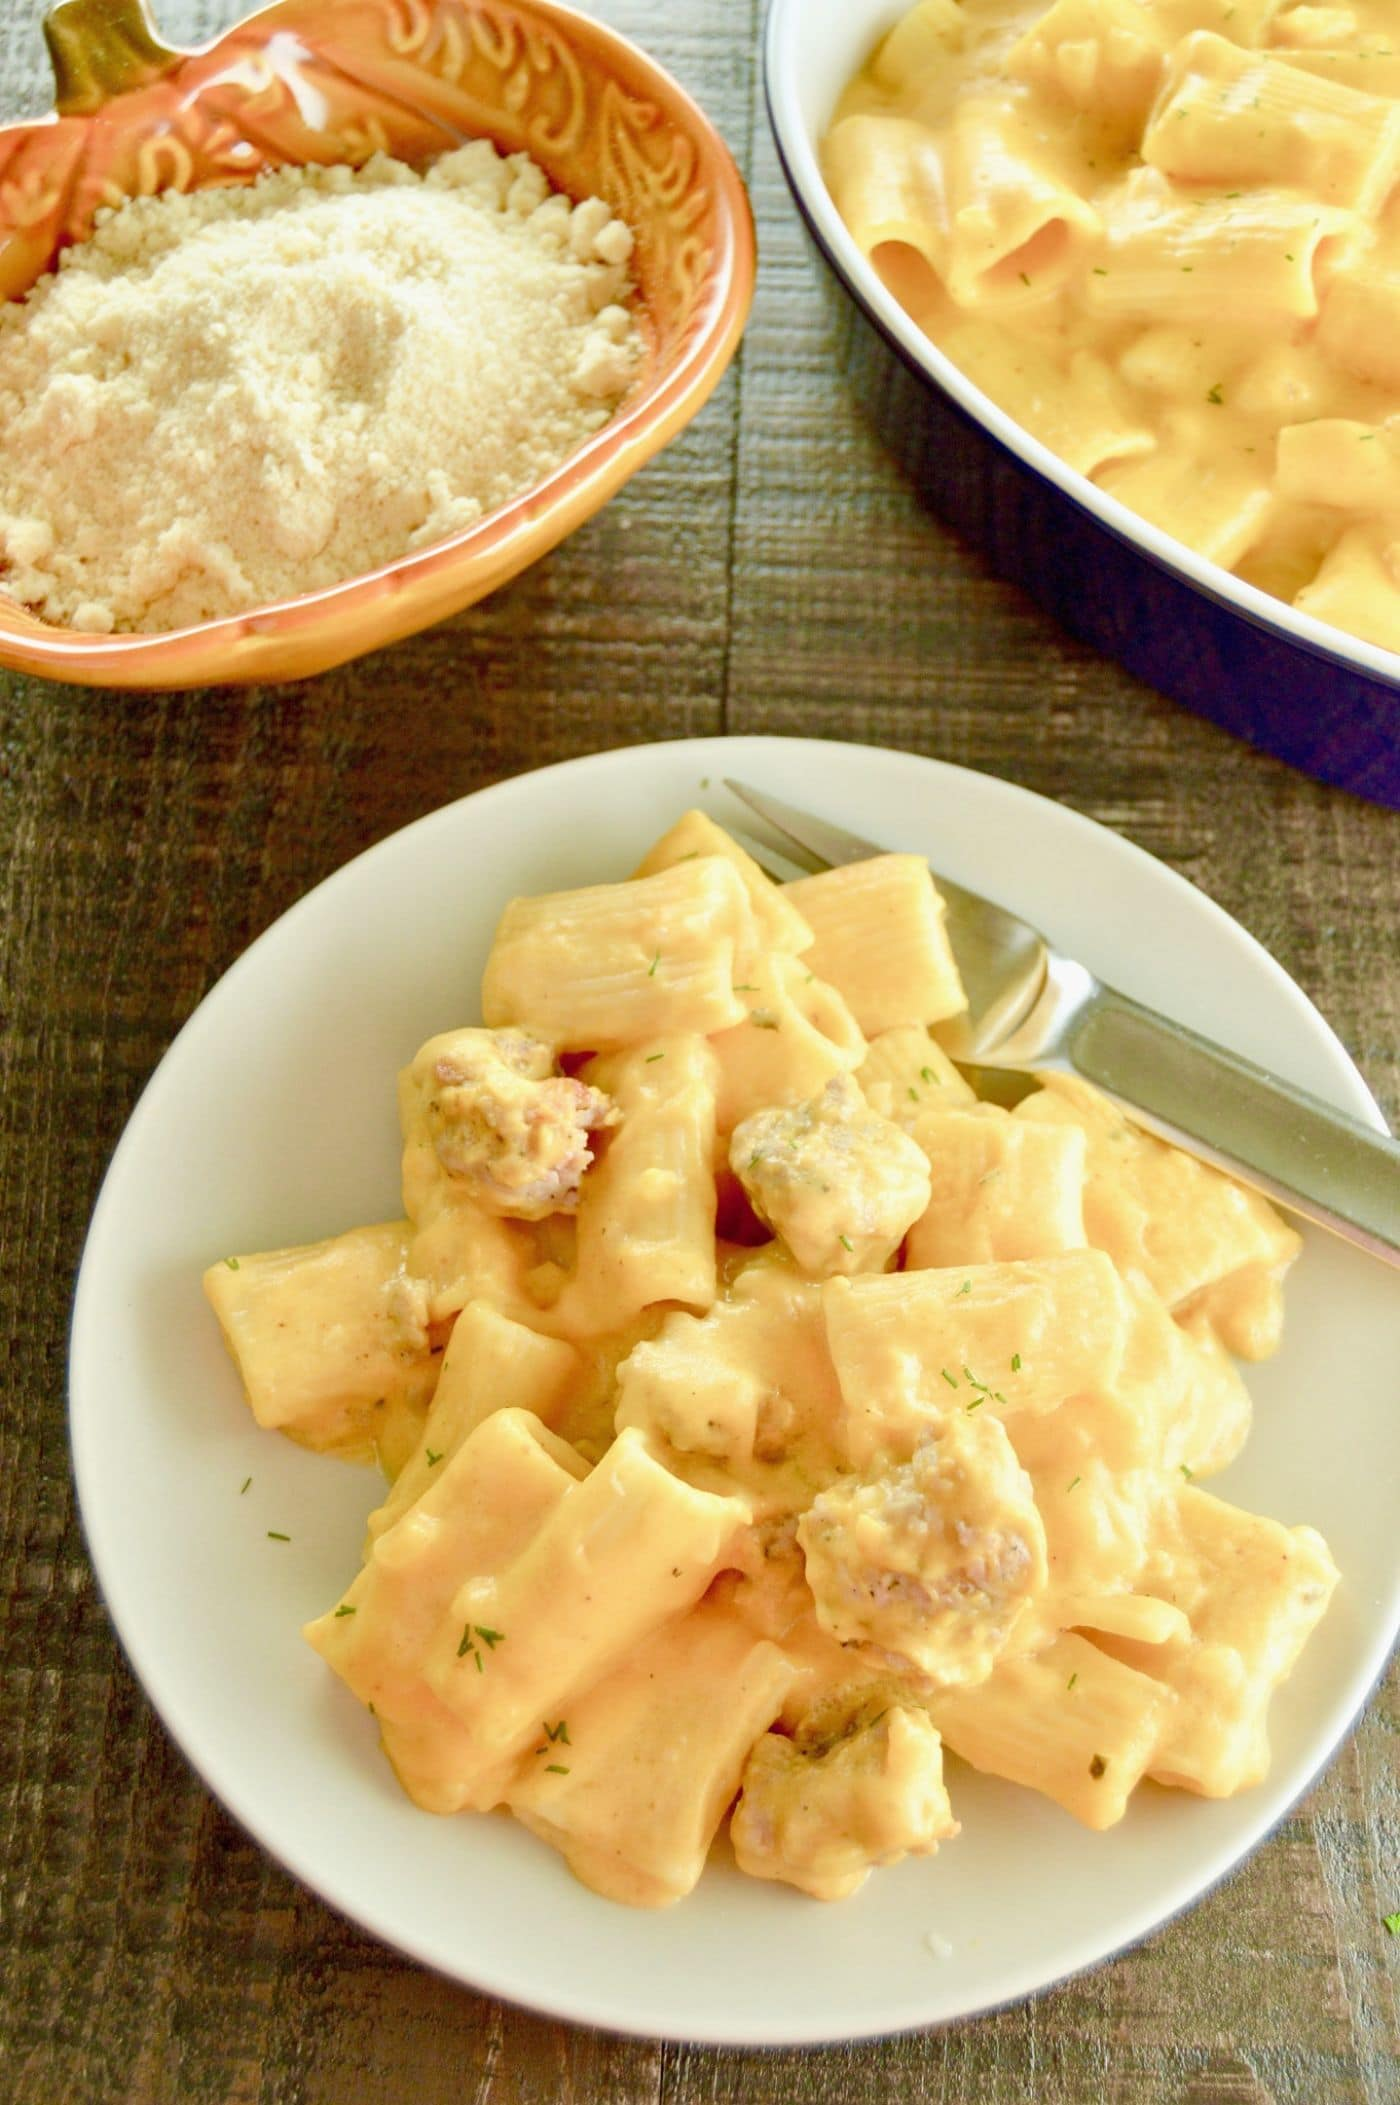 Pumpkin Pasta with Italian Sausage is velvety, cheesy, with hints of earthy pumpkin to lighten the sauce from your regular Mac n Cheese.  A simple weeknight dinner choice for entertaining on a work night.